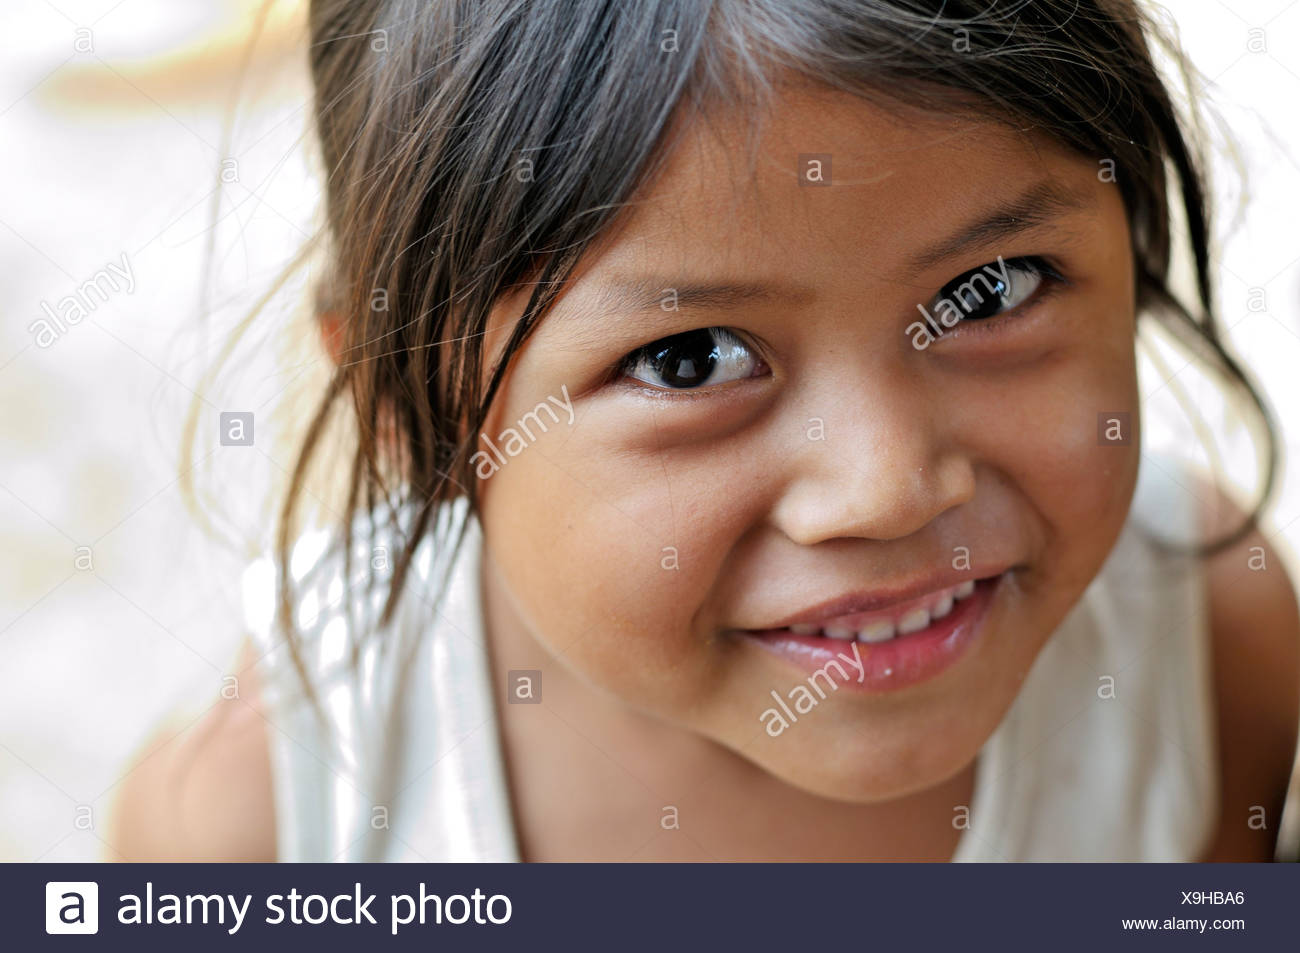 Indigenous girl from the Wichi Indians tribe, 5 years, portrait, La Curvita Indigena community, Gran Chaco, , Argentina - Stock Image